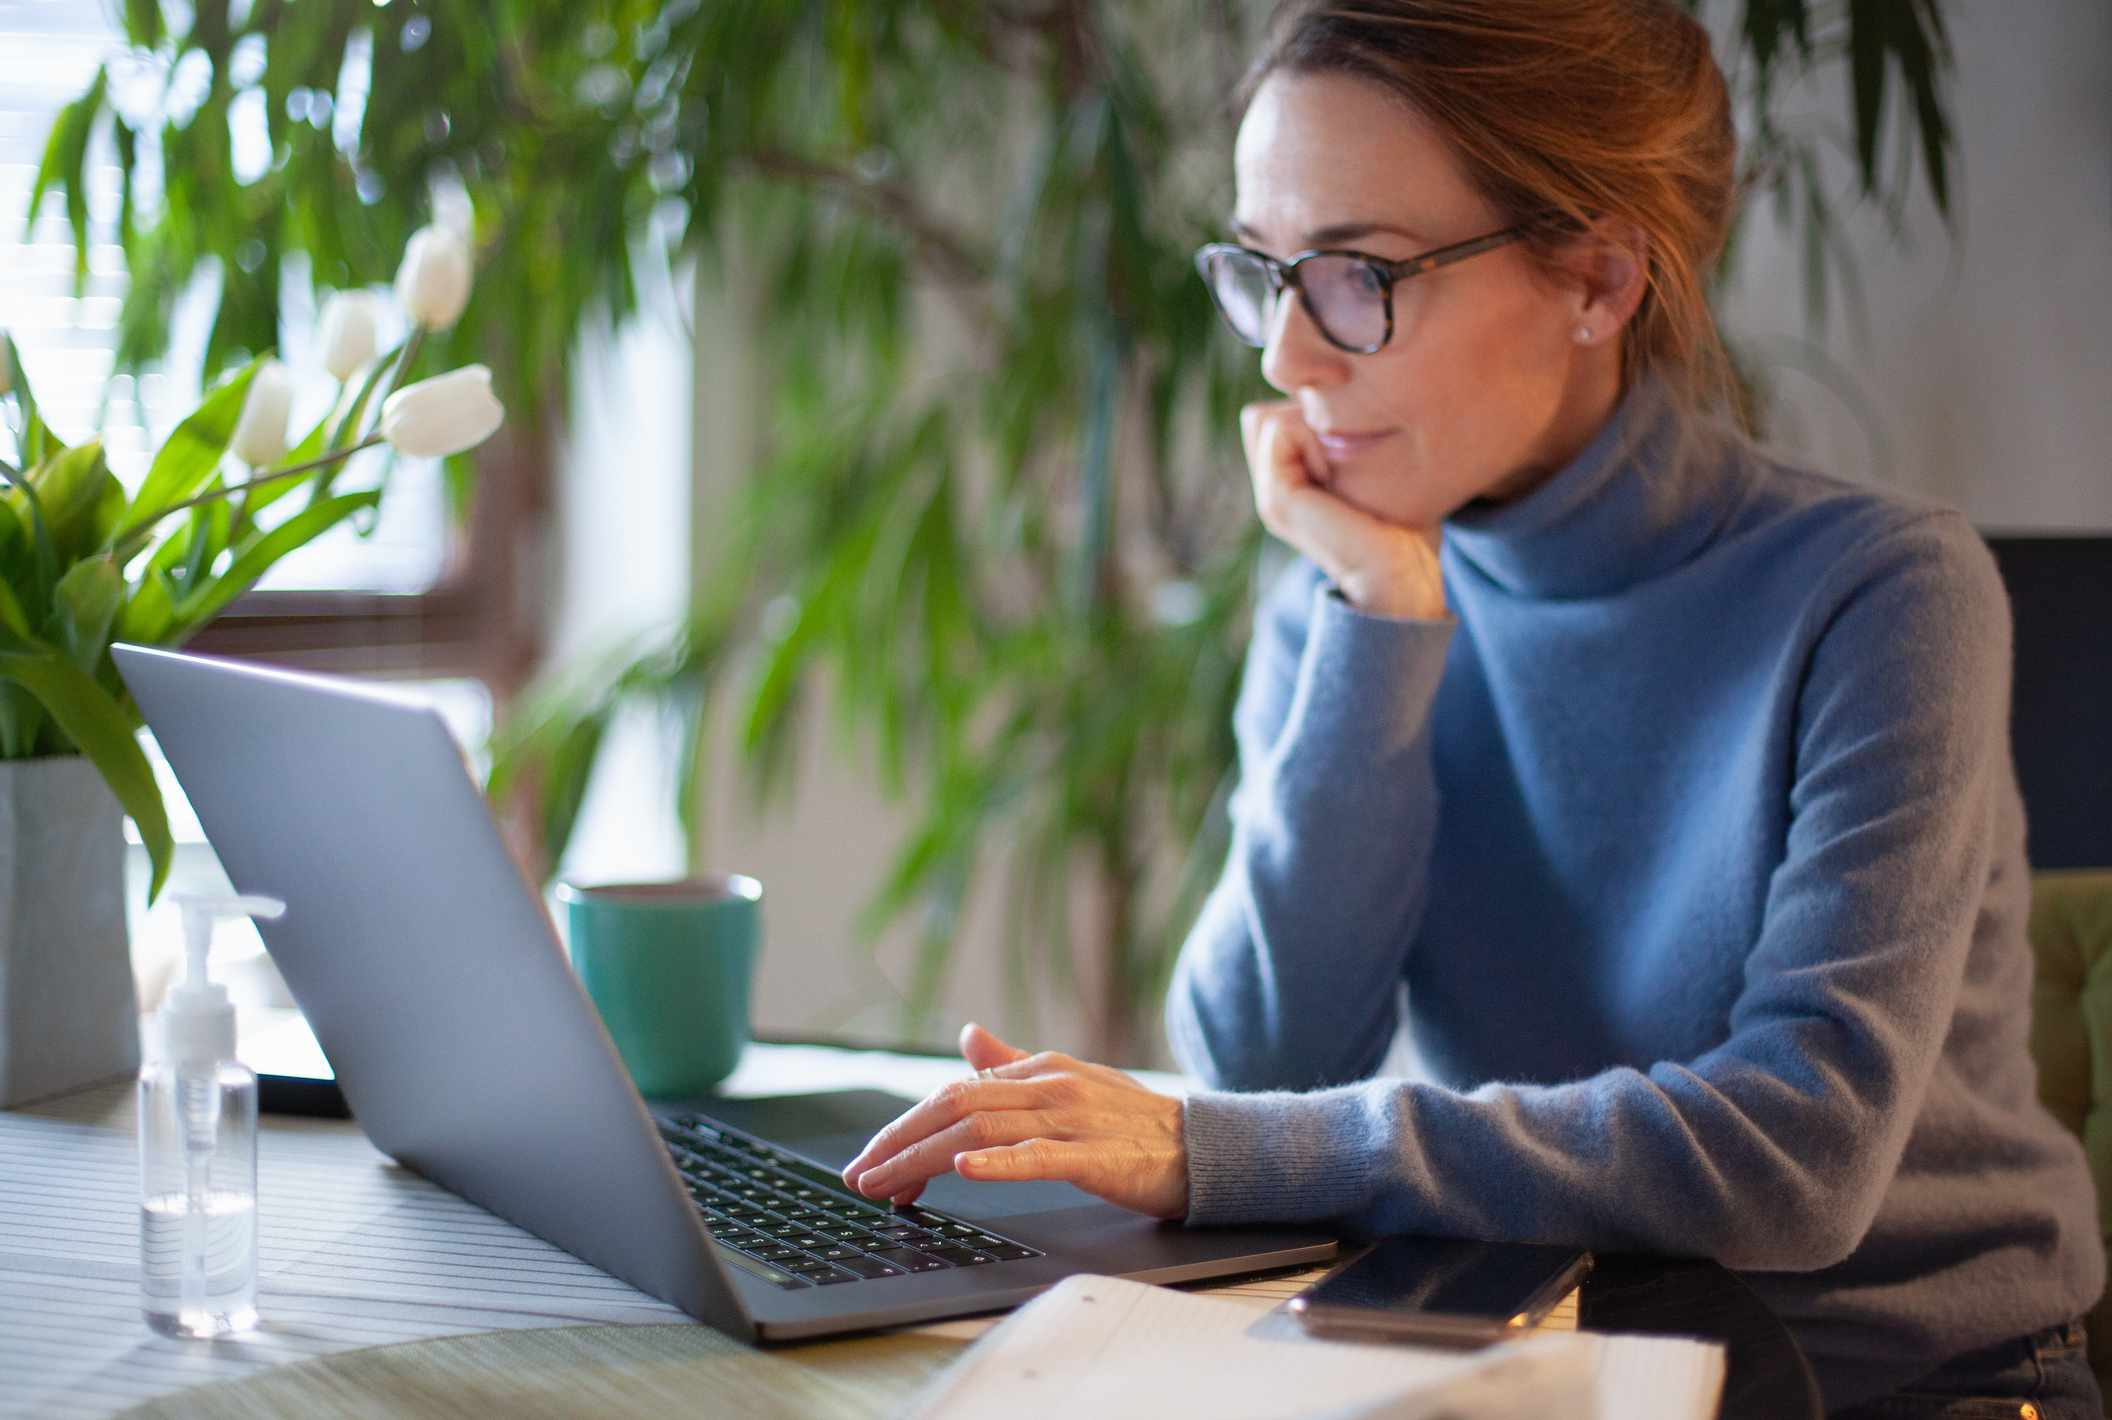 Woman working from home using laptop computer